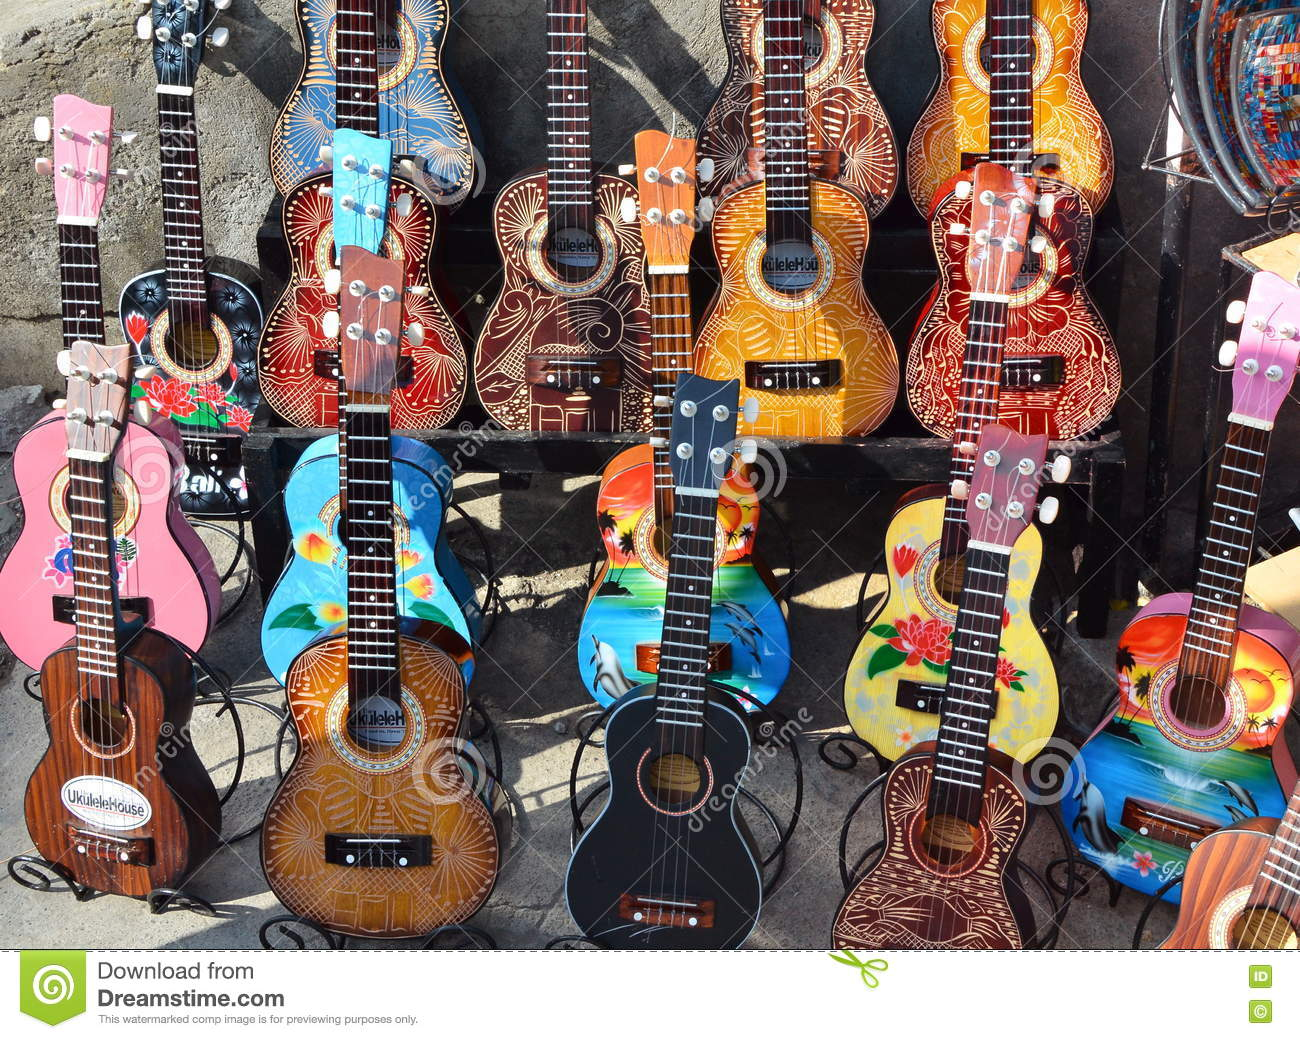 Ubud Bali May 17 2016 Wooden Guitars Typical Souvenirs And